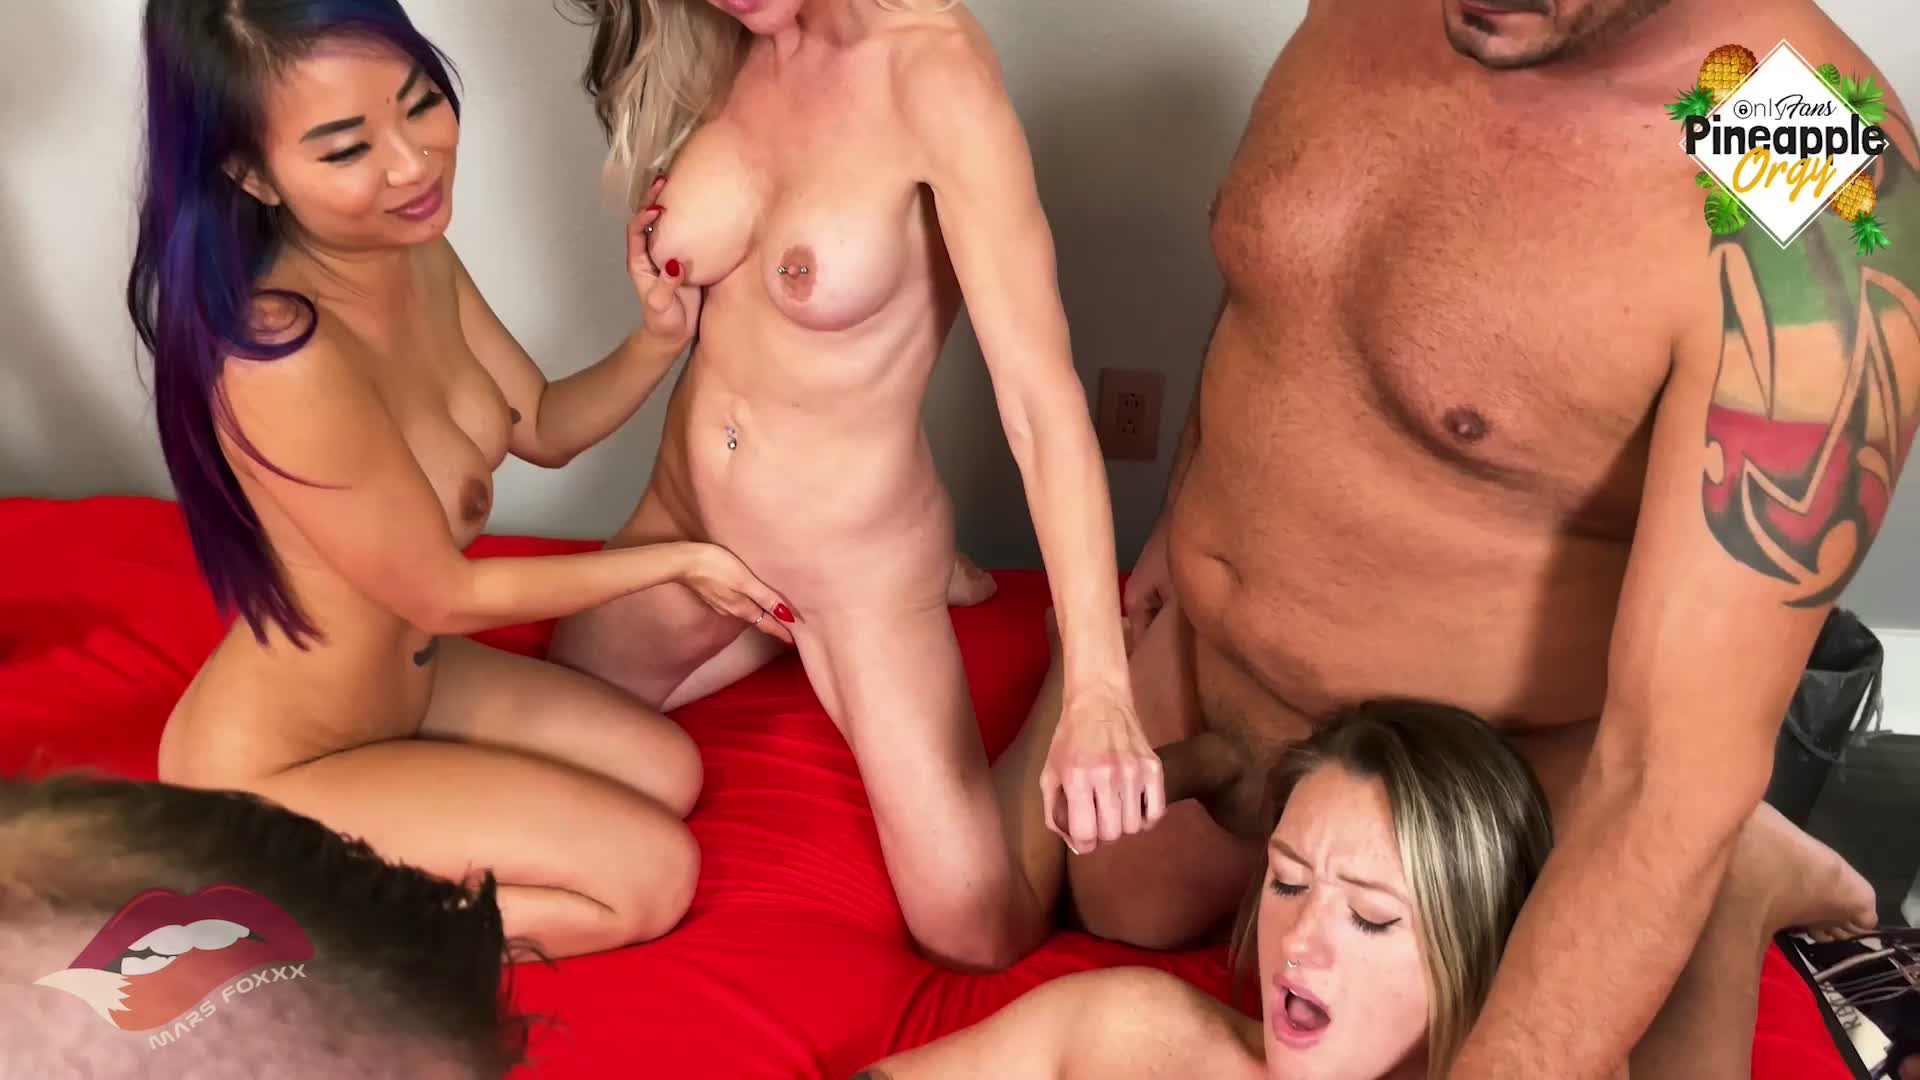 My first ever Orgy was amazing!